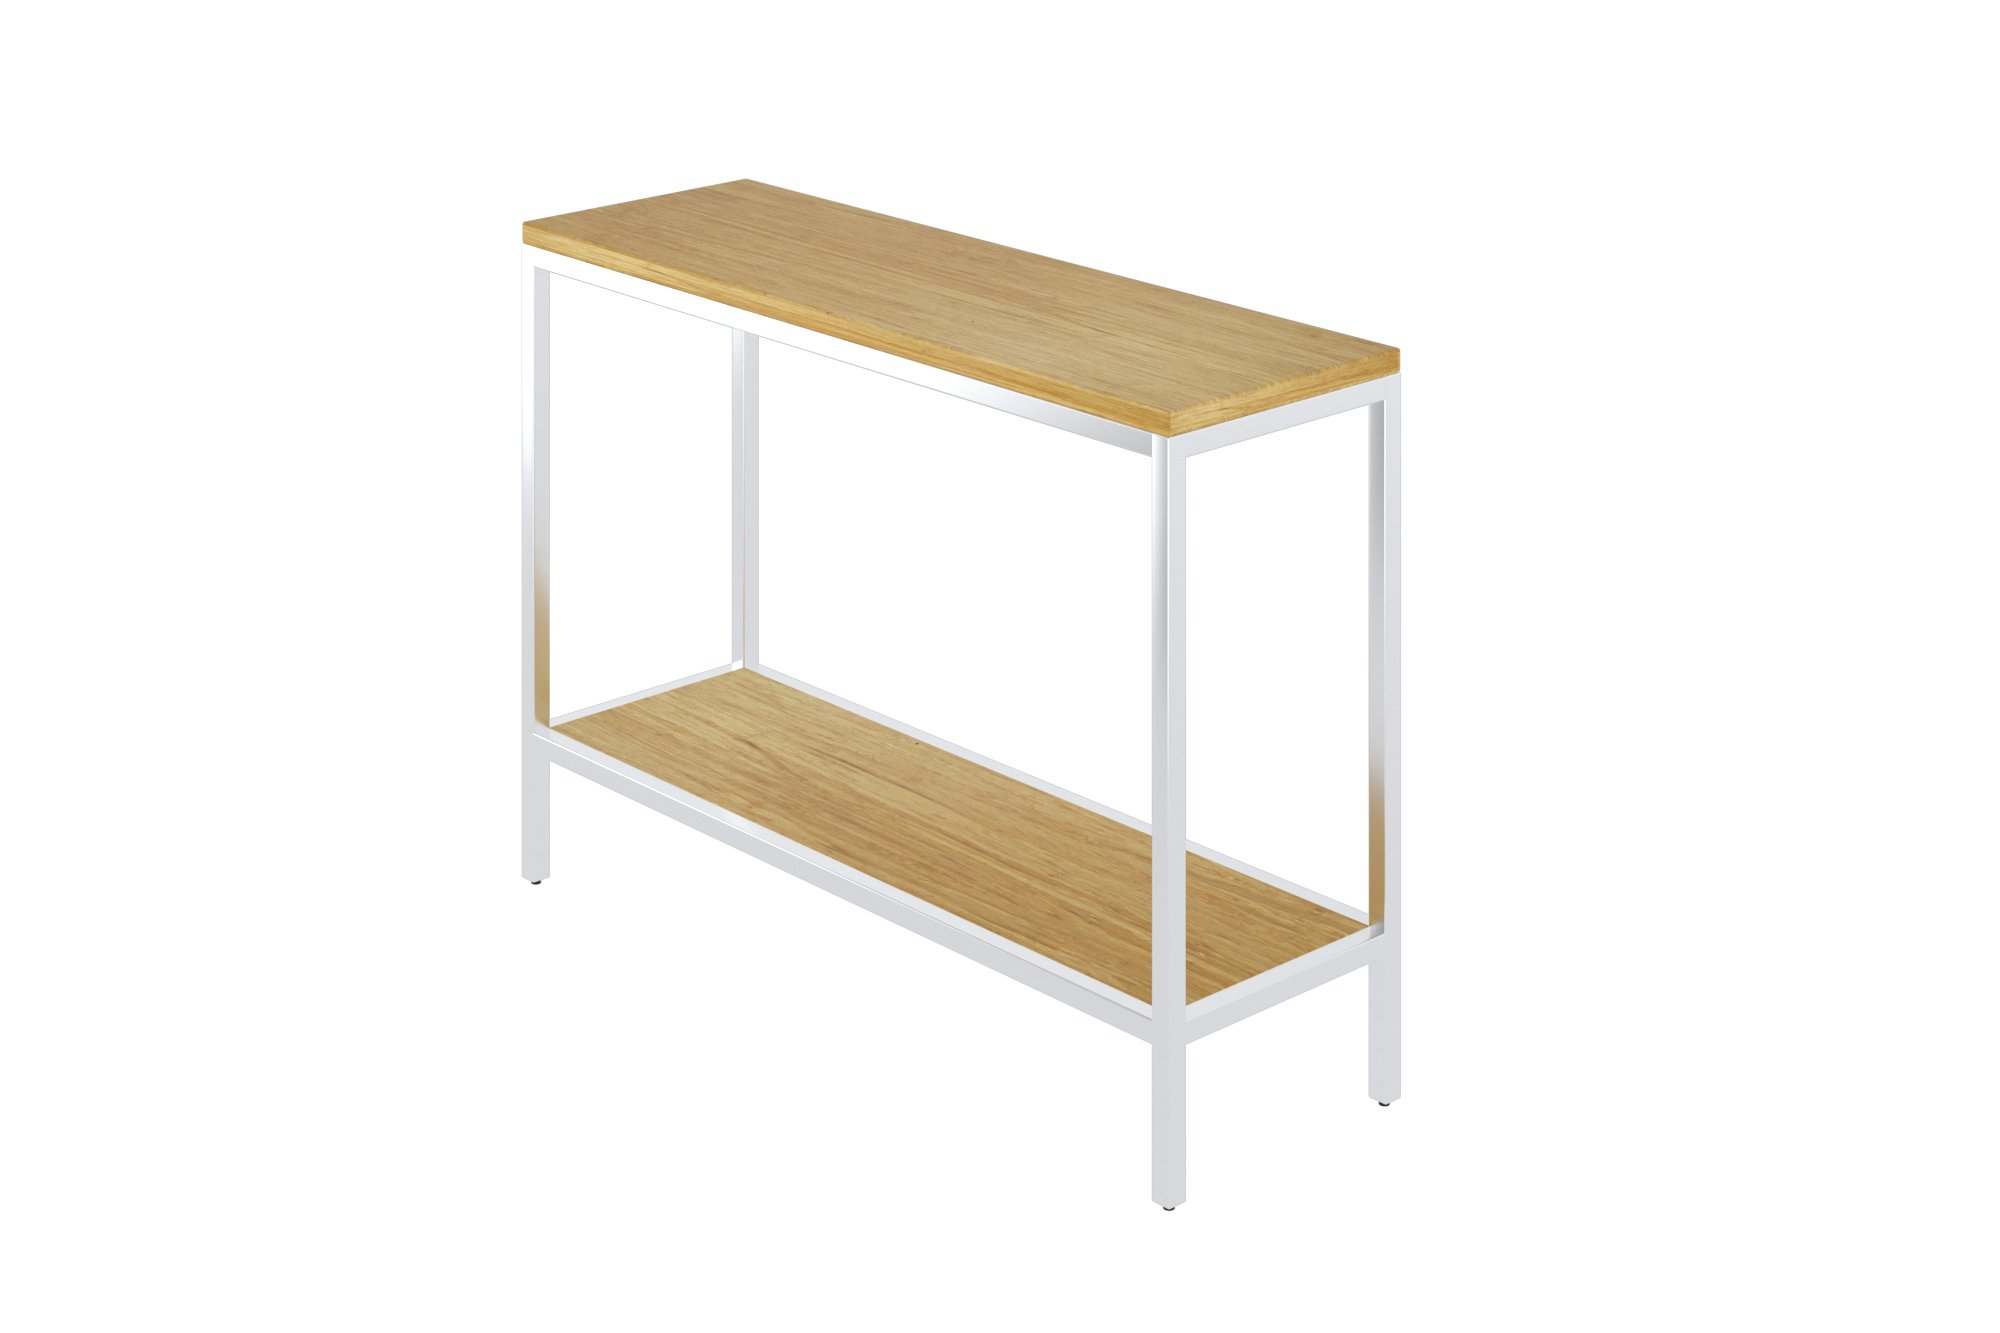 Bamboogle BKL-10-S-4414-T Industrial Chic Bamboo Entry Table Console Table with Steel Legs, 44'' x 14'' x 32'', Timber